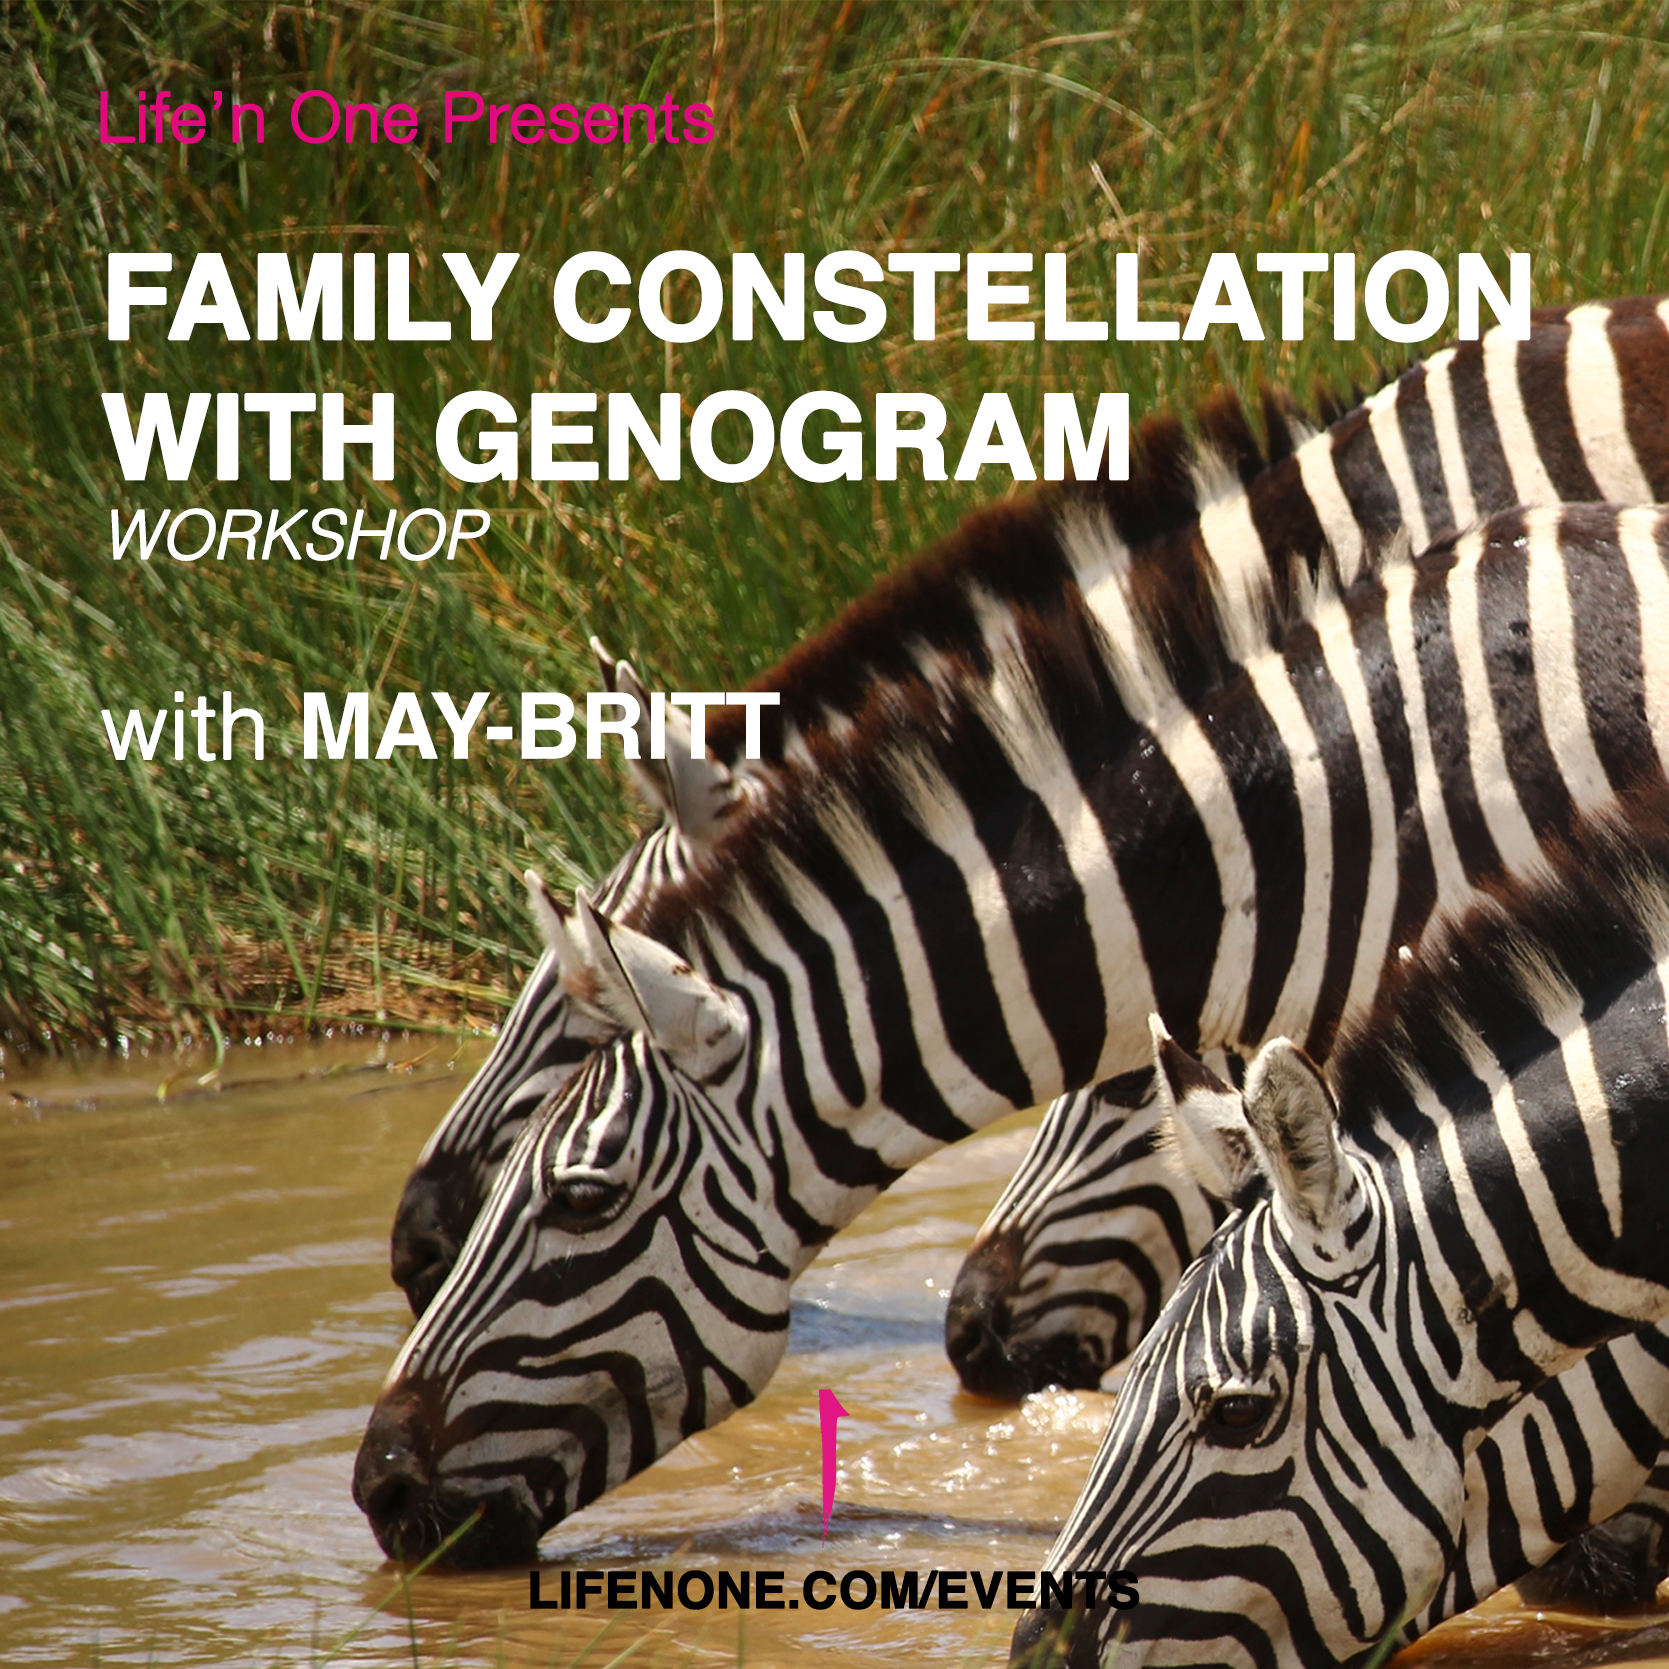 Family Constellation with Genogram - Workshop with May Britt